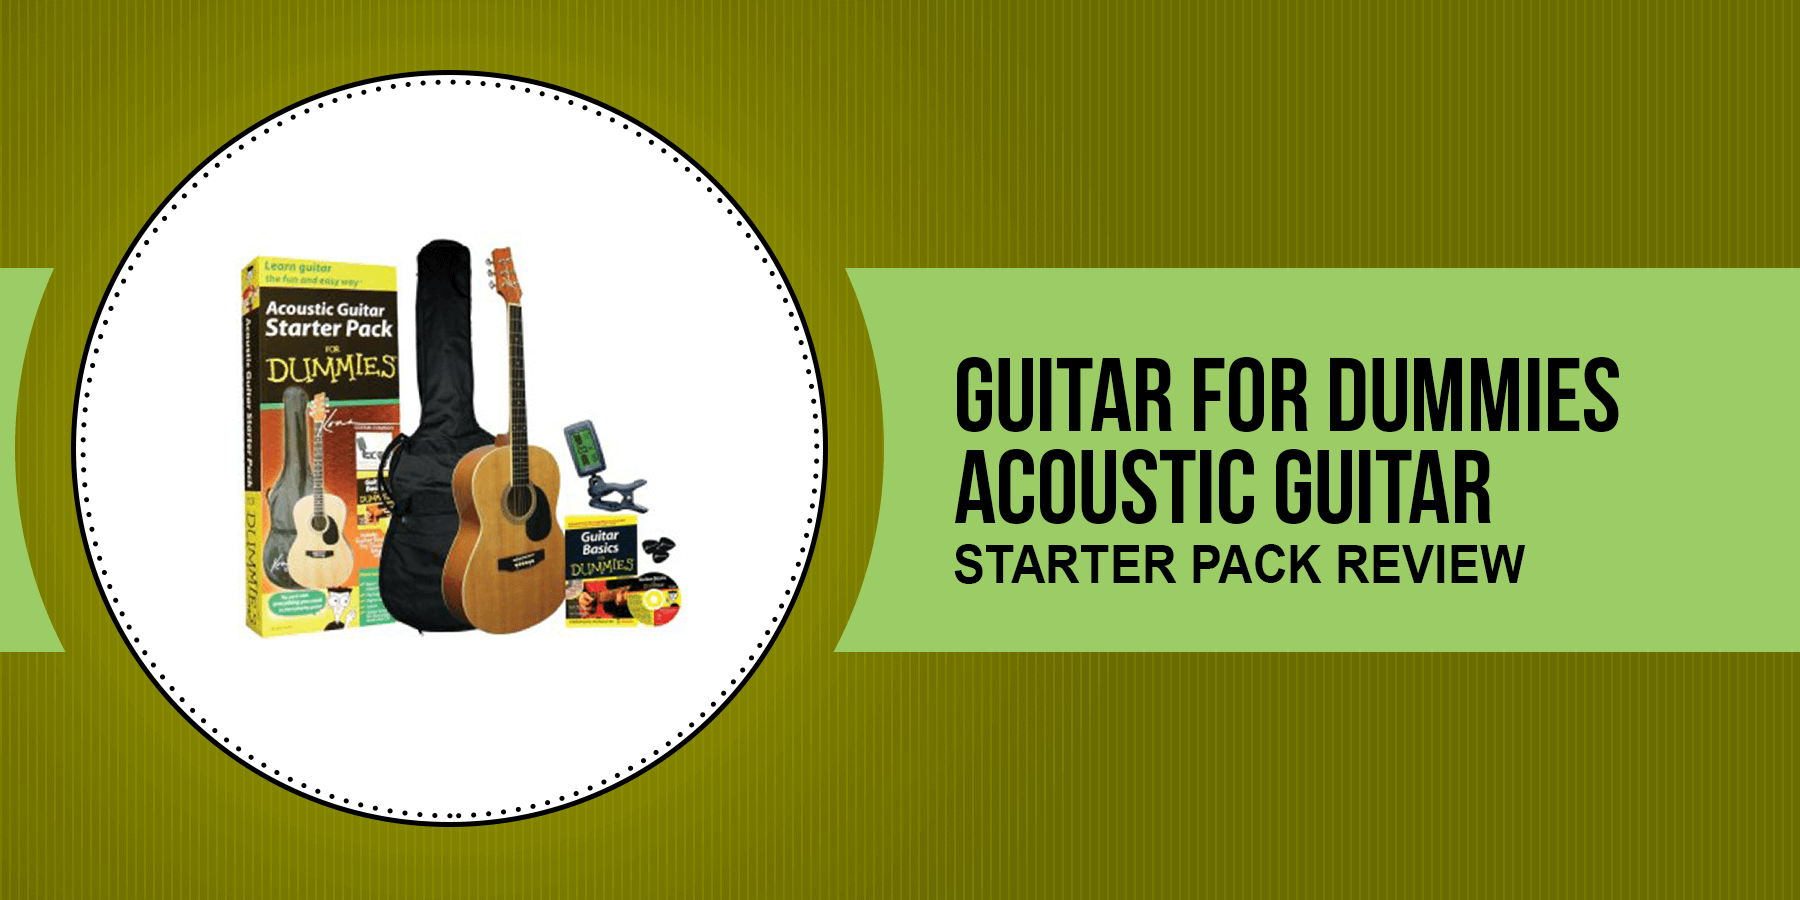 Guitar for Dummies acoustic guitar starter pack Review